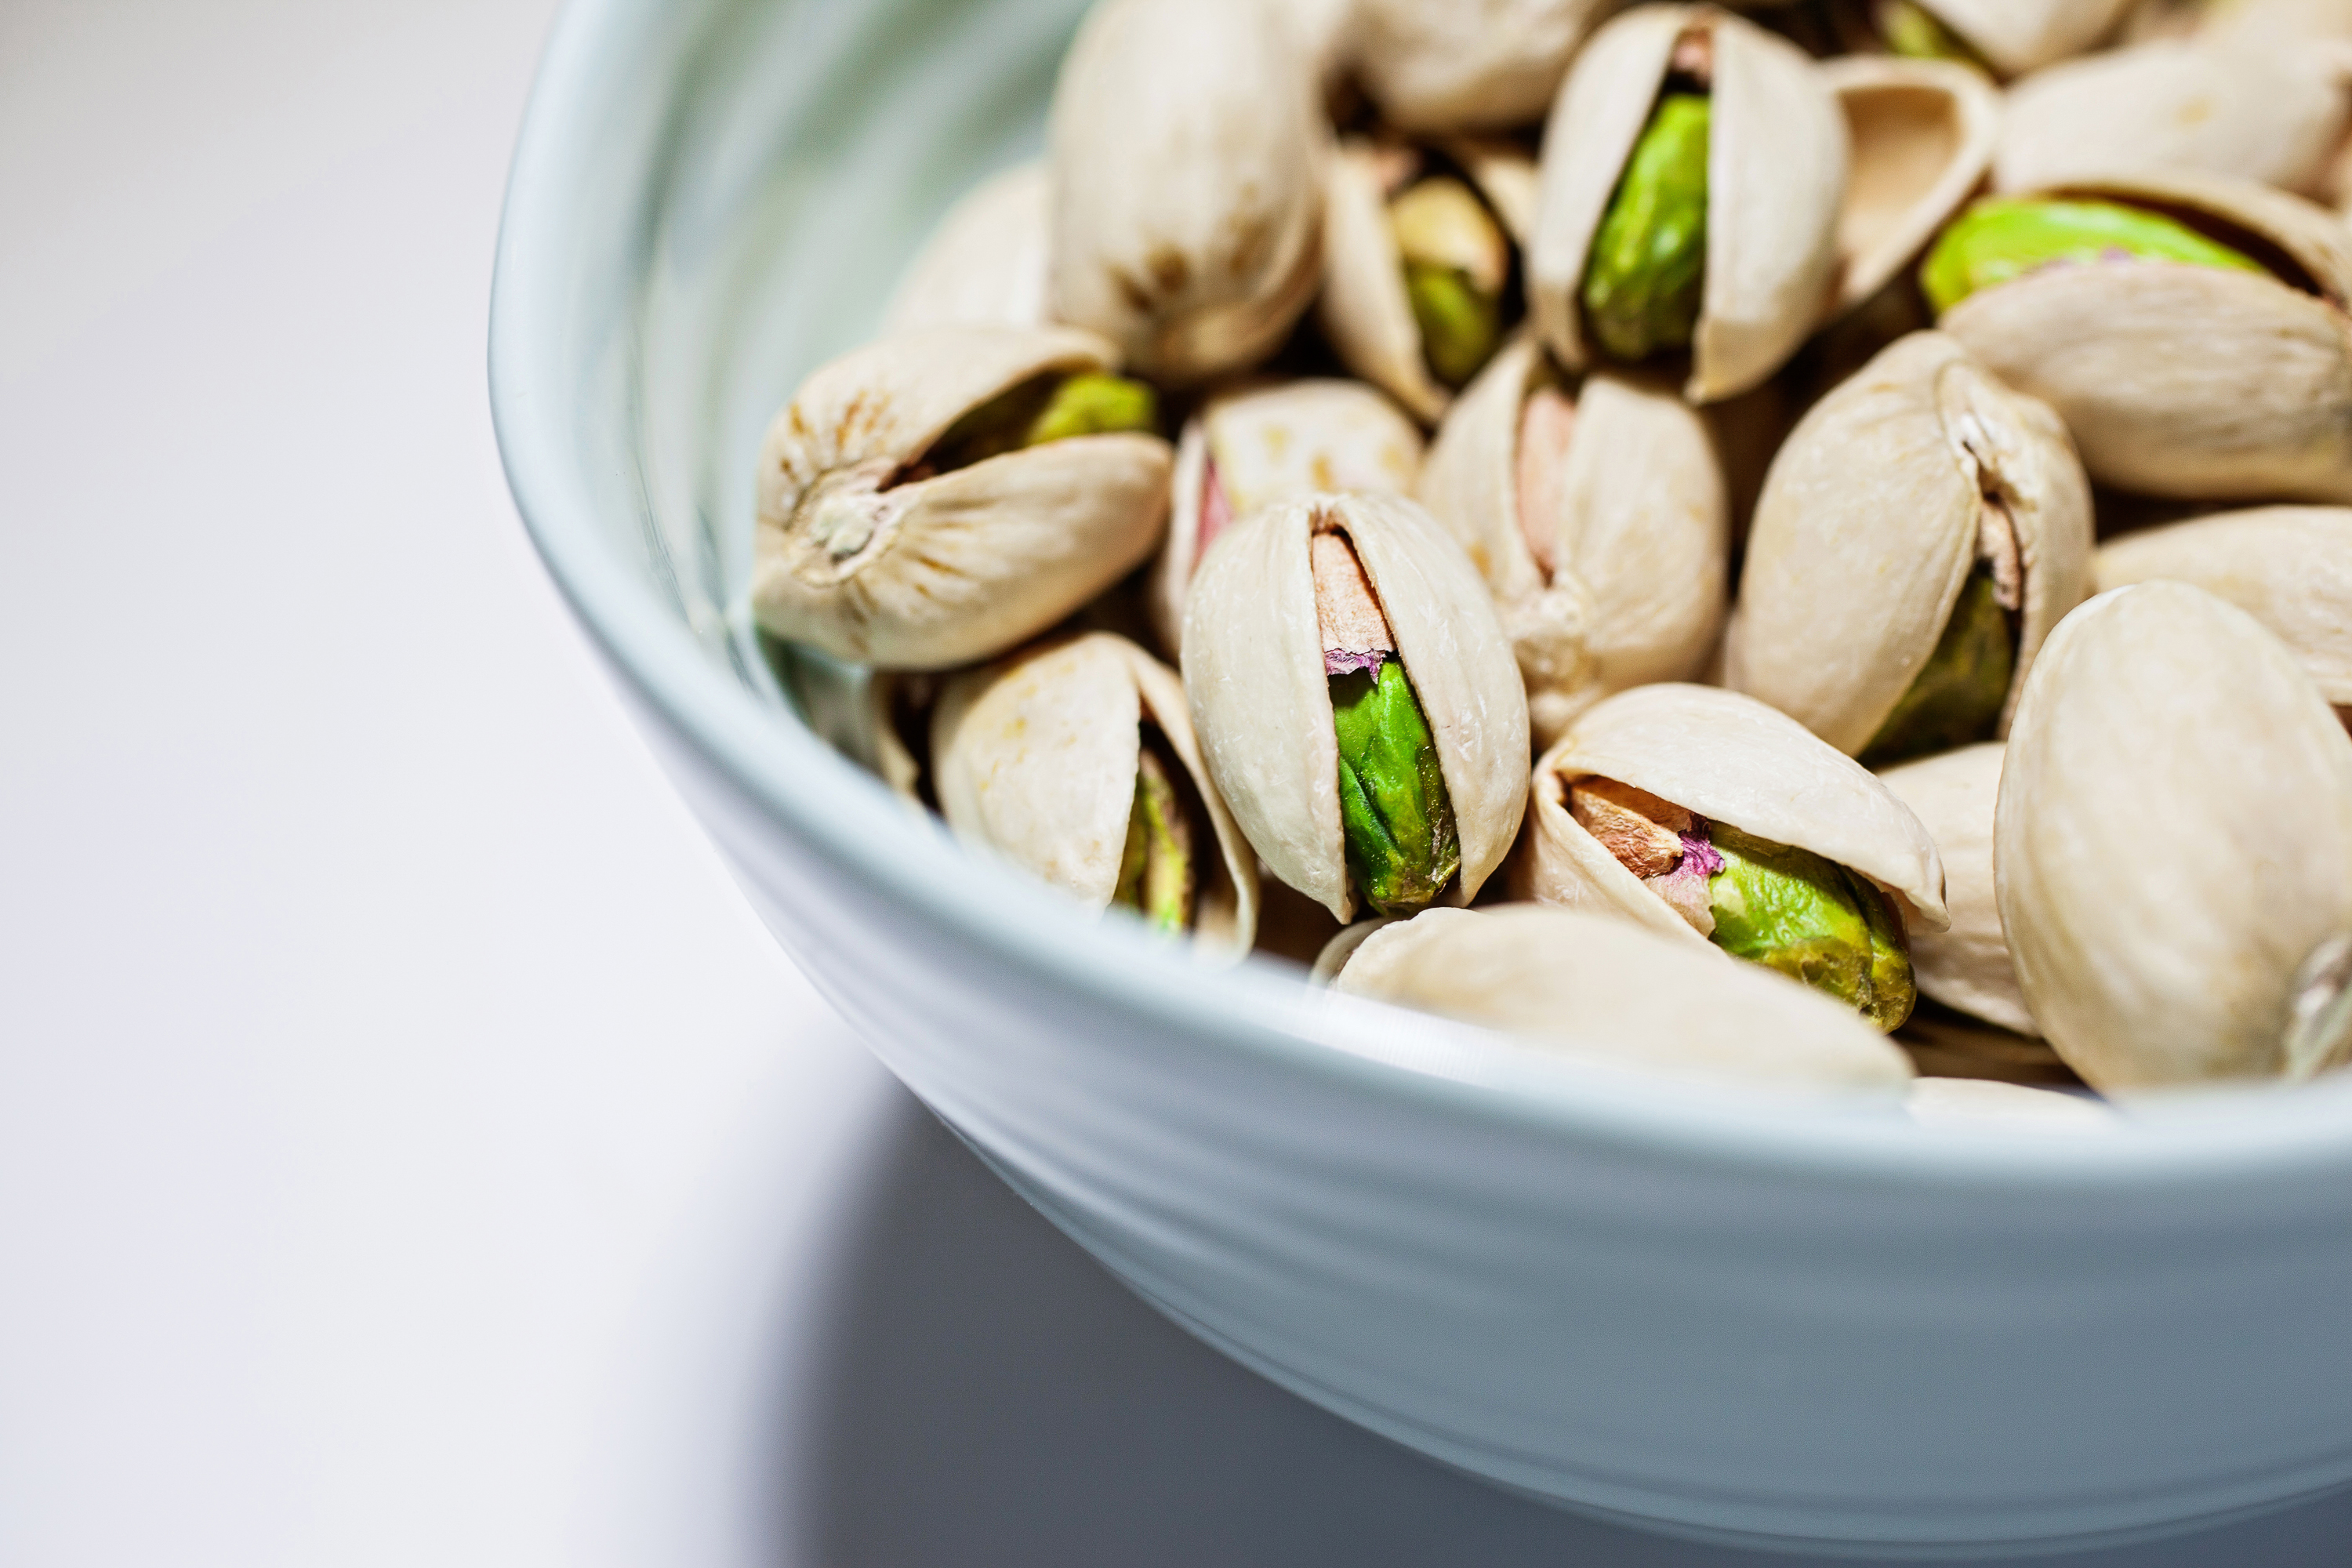 Pistachio Extracts Found to Have Anti-Viral, and Anti-Biotic Power